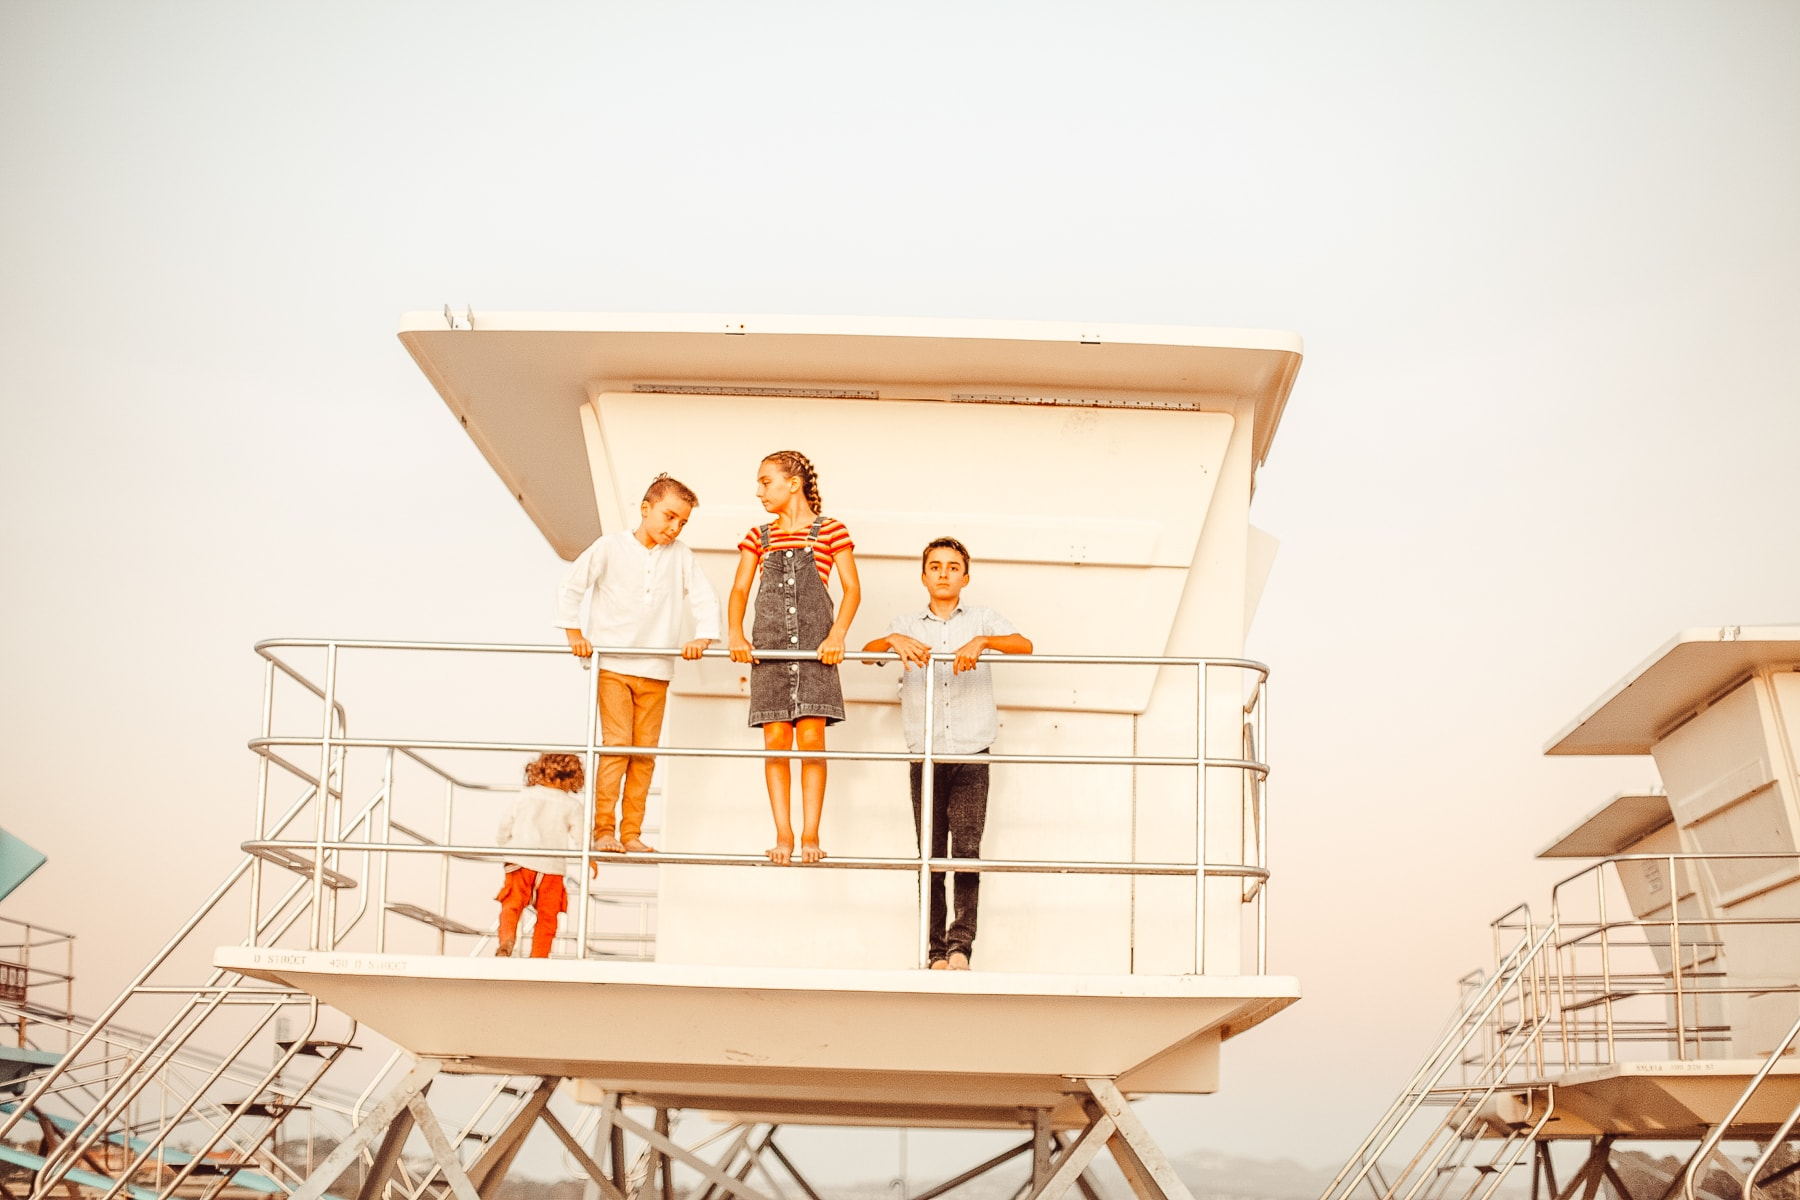 kids on lifeguard tower